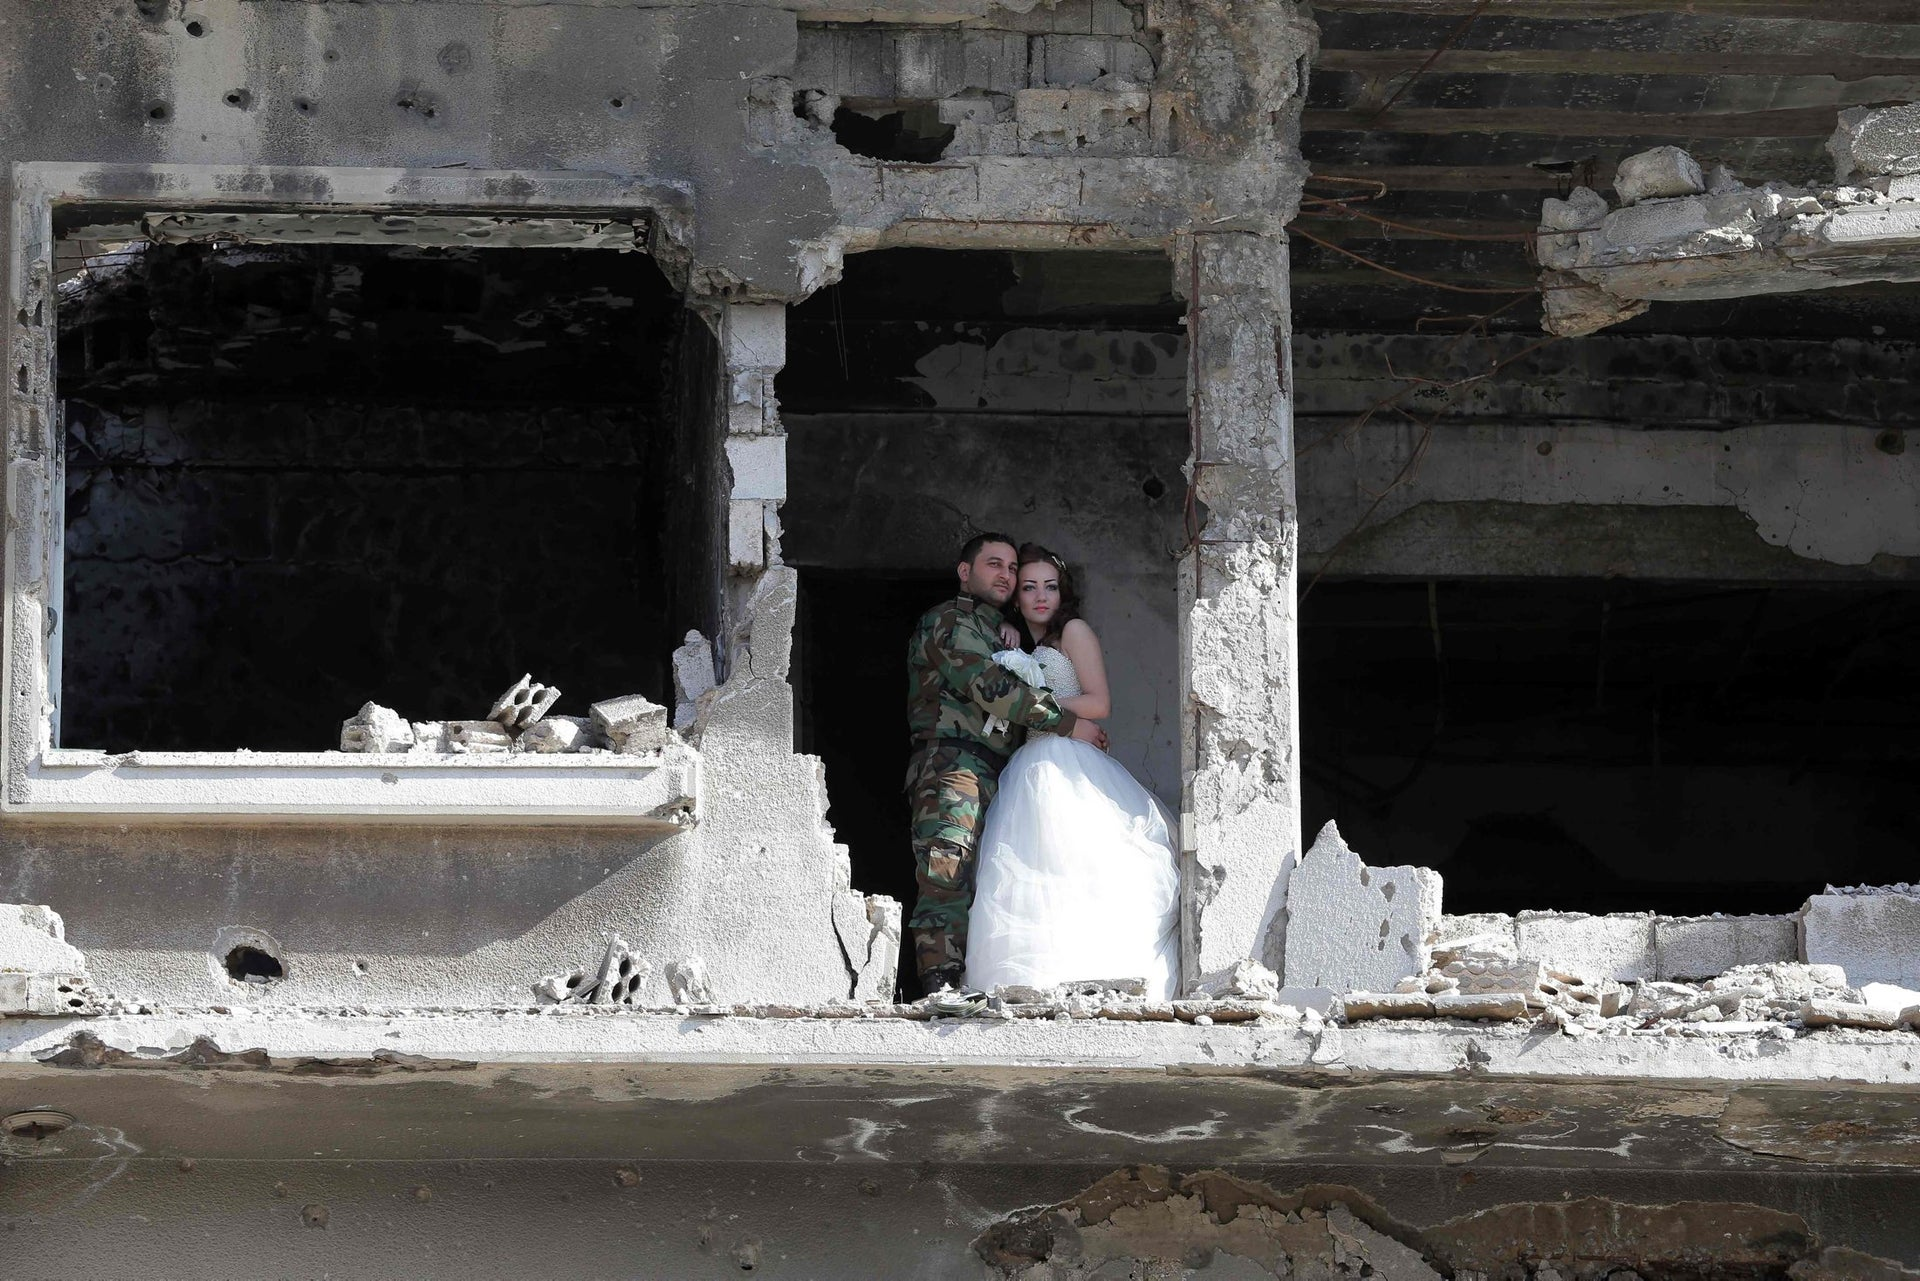 Nada Merhi and Hassan Youssef look out at the war-torn Syrian city of Homs as they pose for their wedding photos on February 5, 2016.